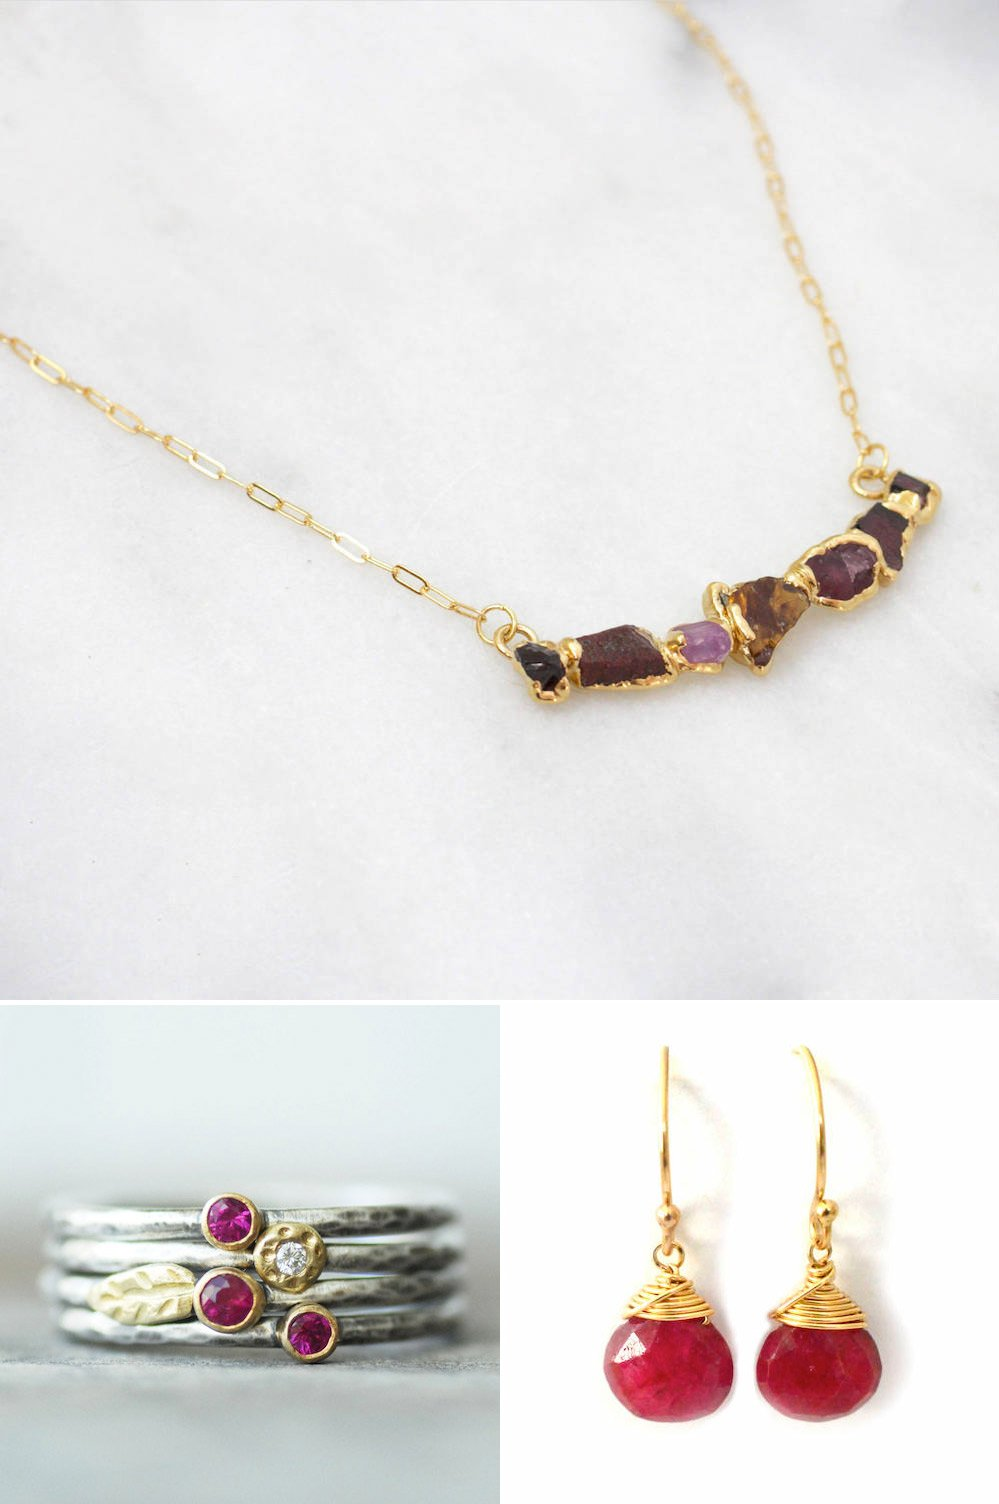 Shop Raw ruby necklace from Dani Barbe, $138, Ruby earrings from Aquarian Thoughts, $24, Ruby and diamond stacking ring set from Lilian Ginebra, $396 and more